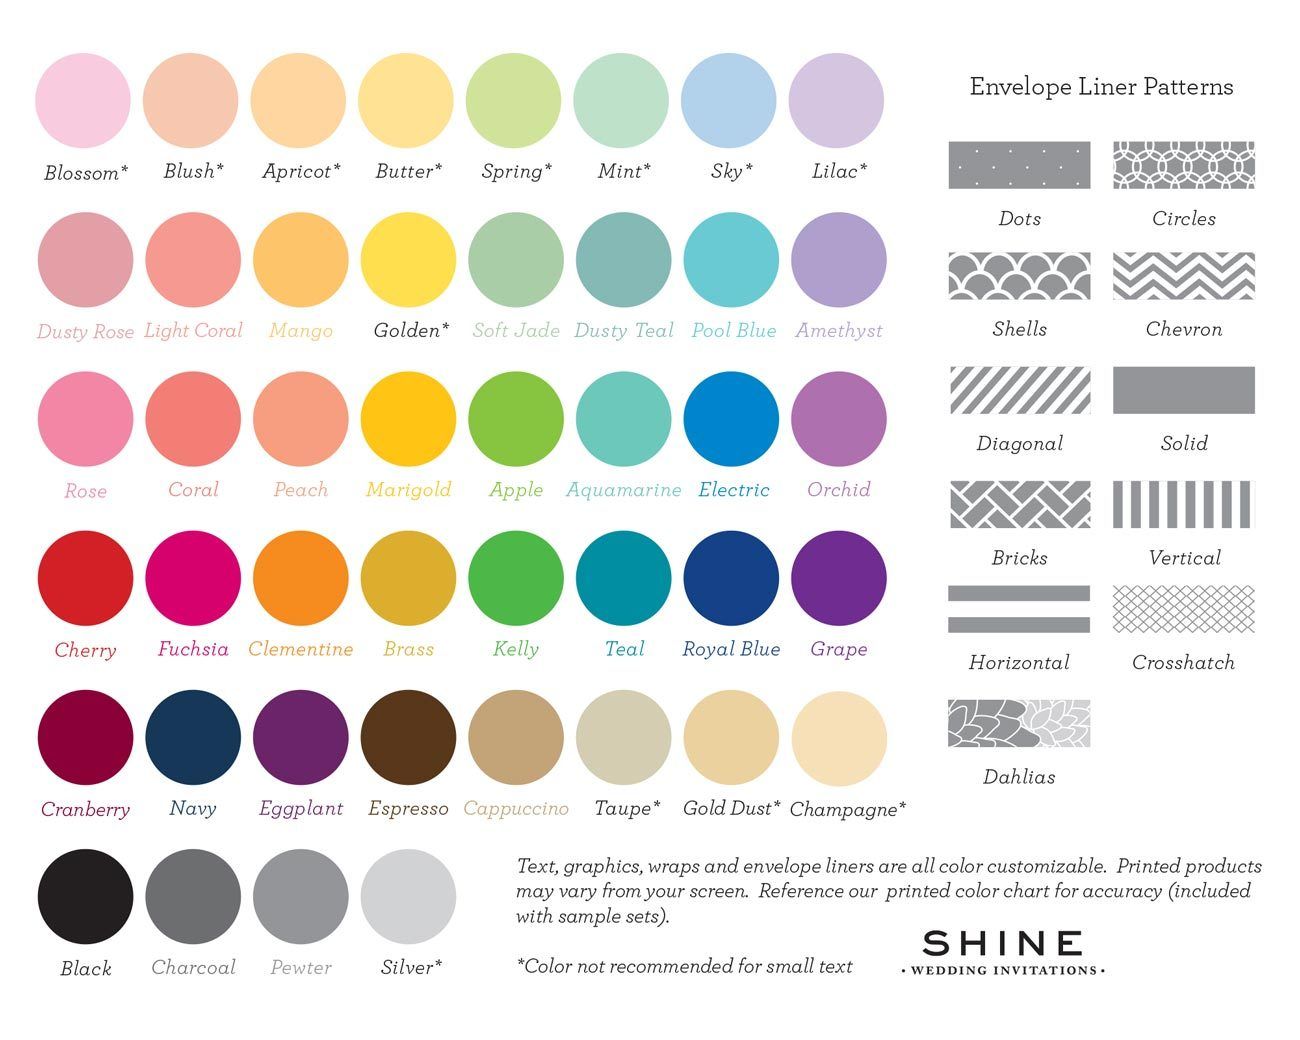 Shine Wedding Invitations Color Chart